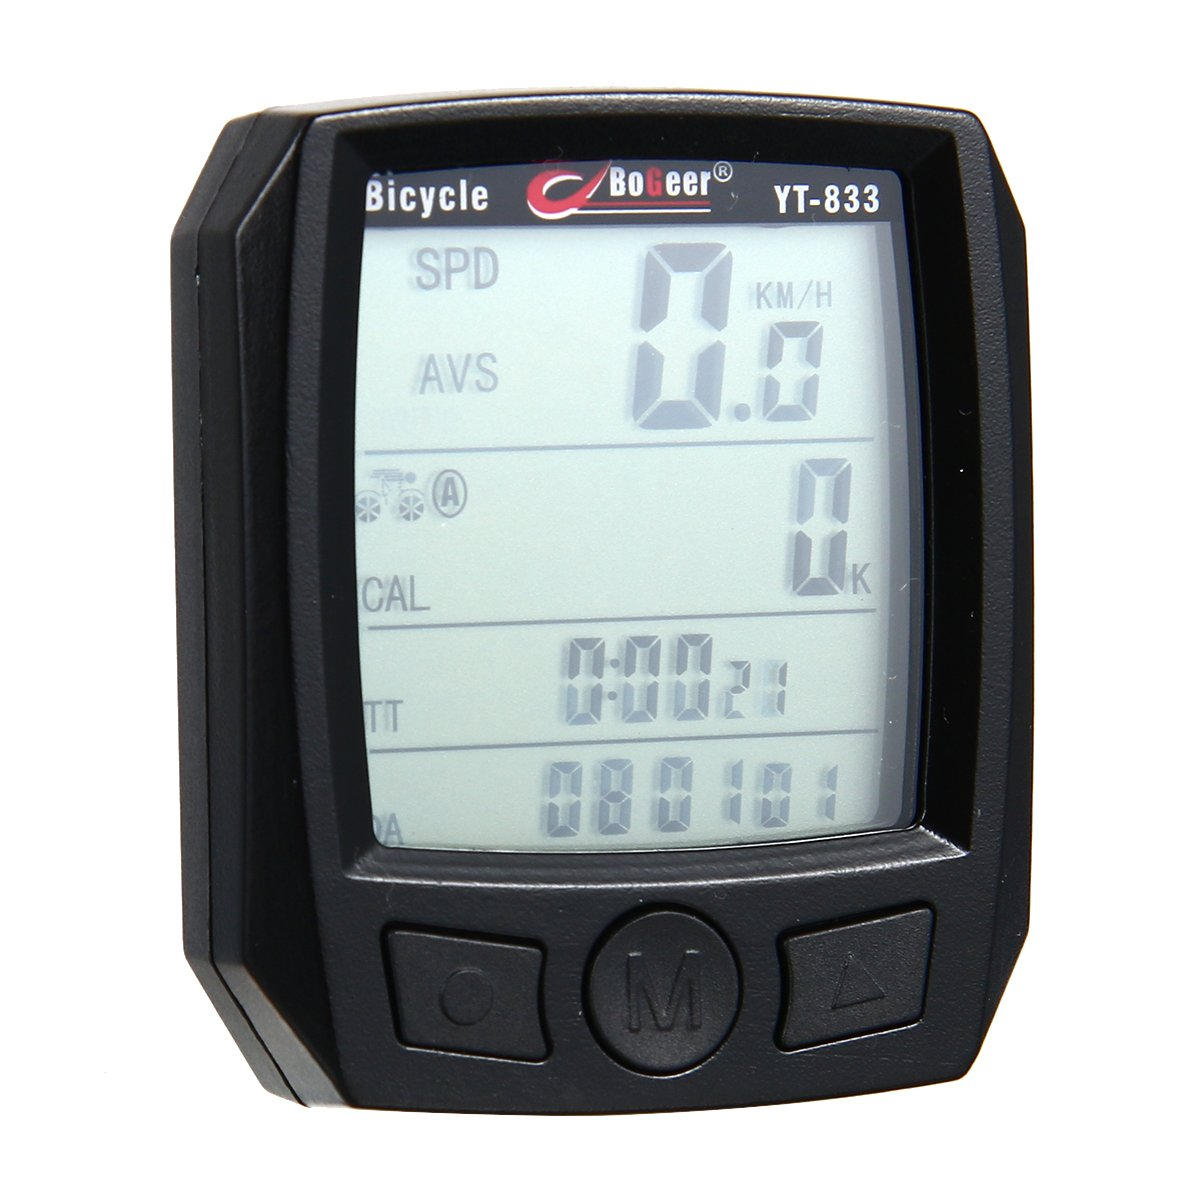 Xcellent Global Multi Function LCD Bicycle Cycling Computer Odometer Speedometer Stopwatch Waterproof NIGHT LIGHT Black M-FS020